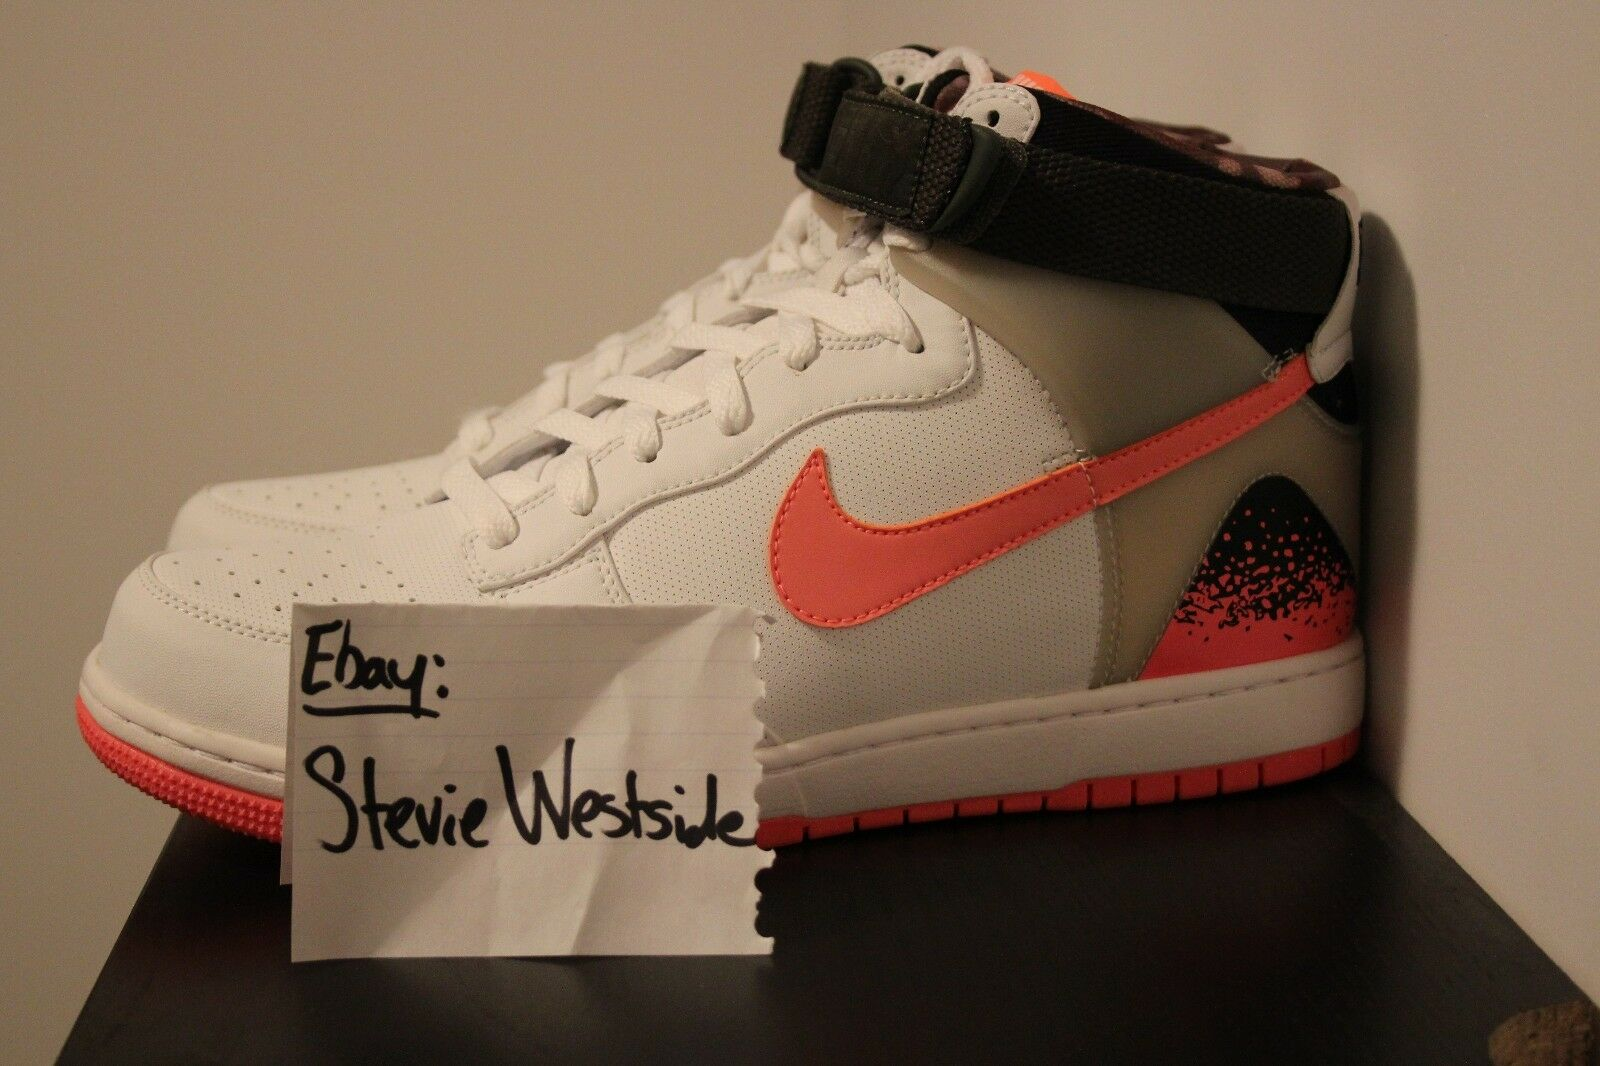 Nike Dunk High Challenge x Union NYC DS 20th Anniversary Sz 11 DS NYC RARE 1of100 made 2a9429